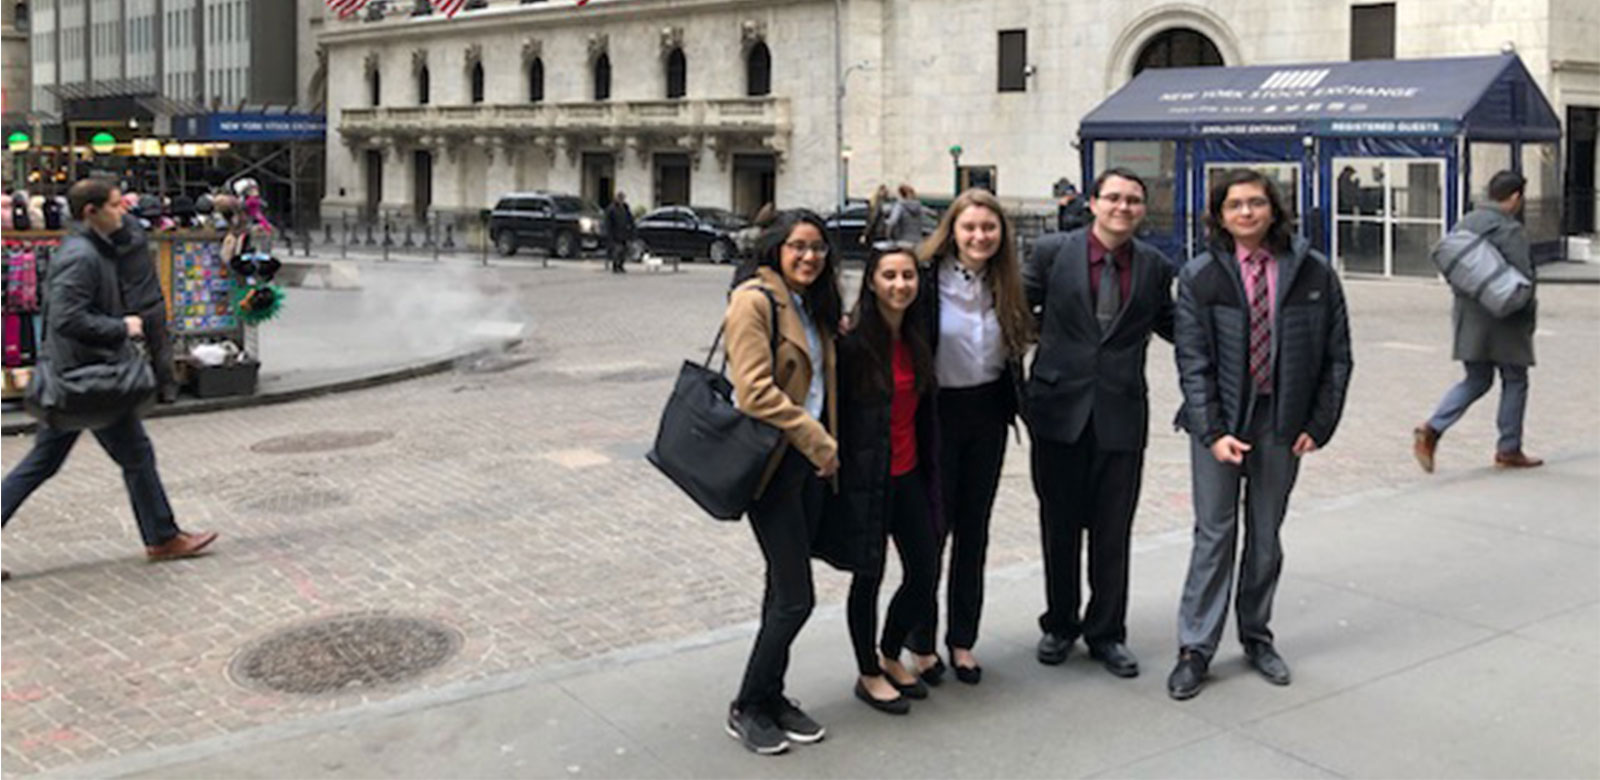 Sachem Business Students Head to Federal Reserve